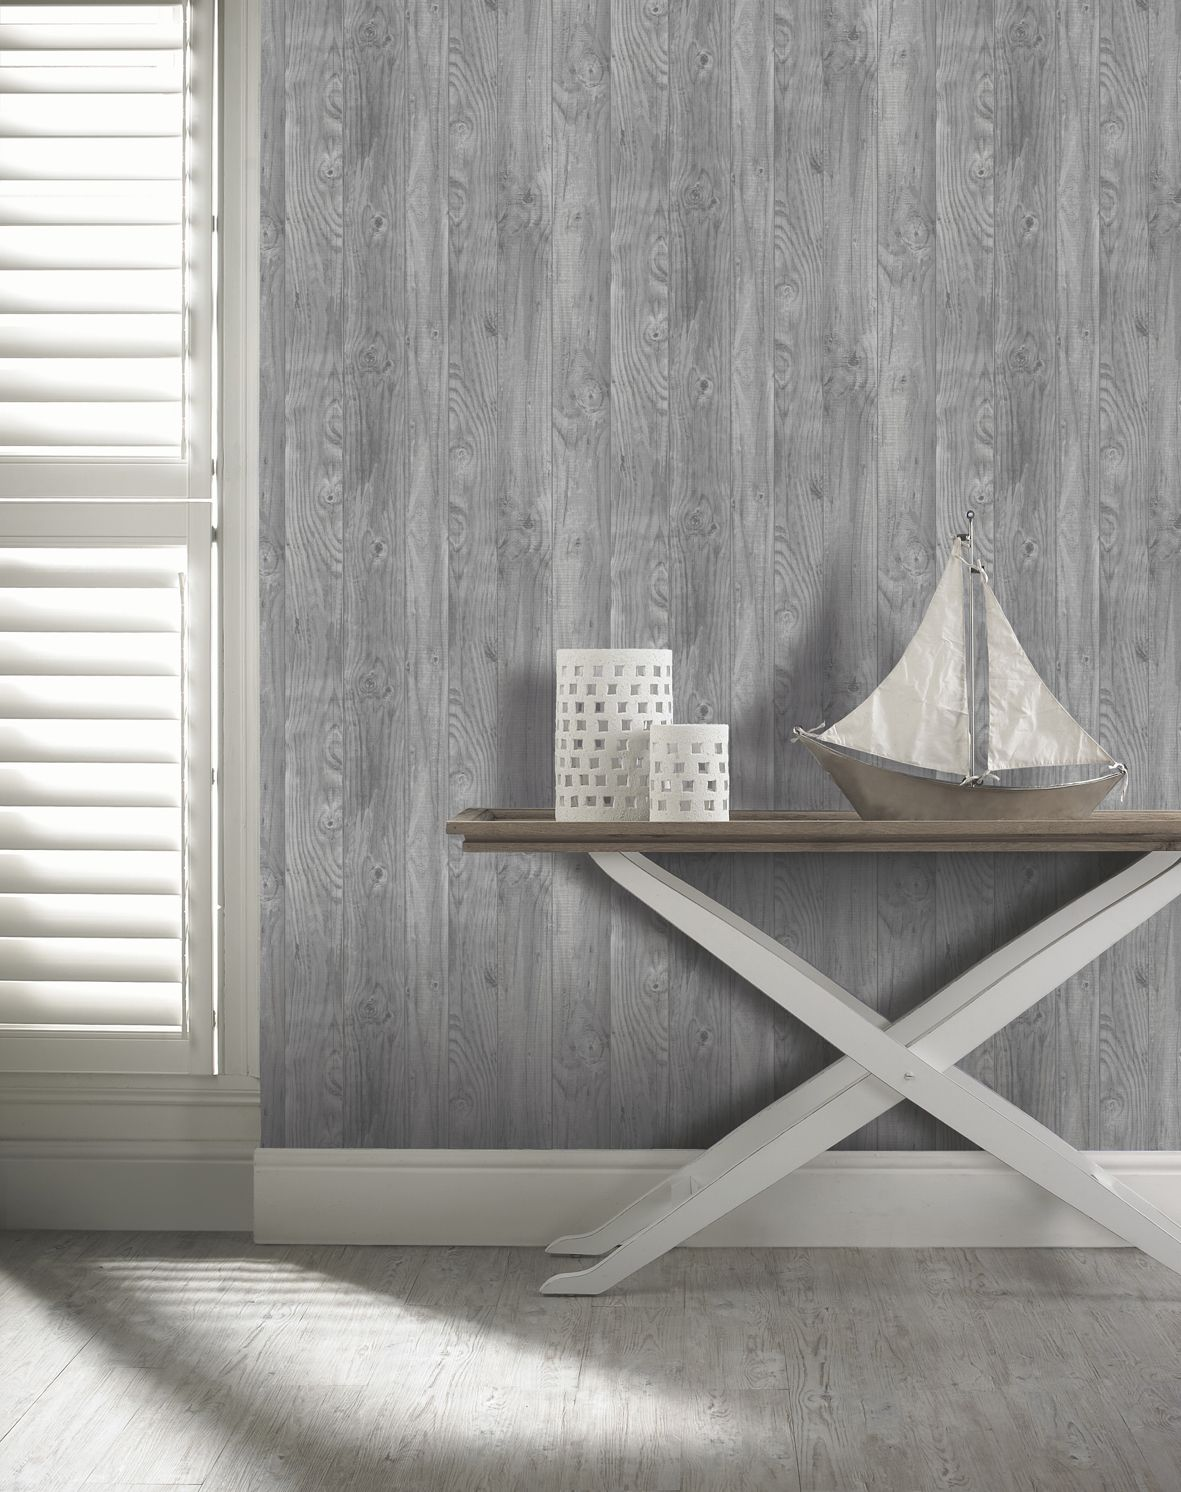 A Stunning Realistic Wood Panel Effect Wallpaper By Arthouse